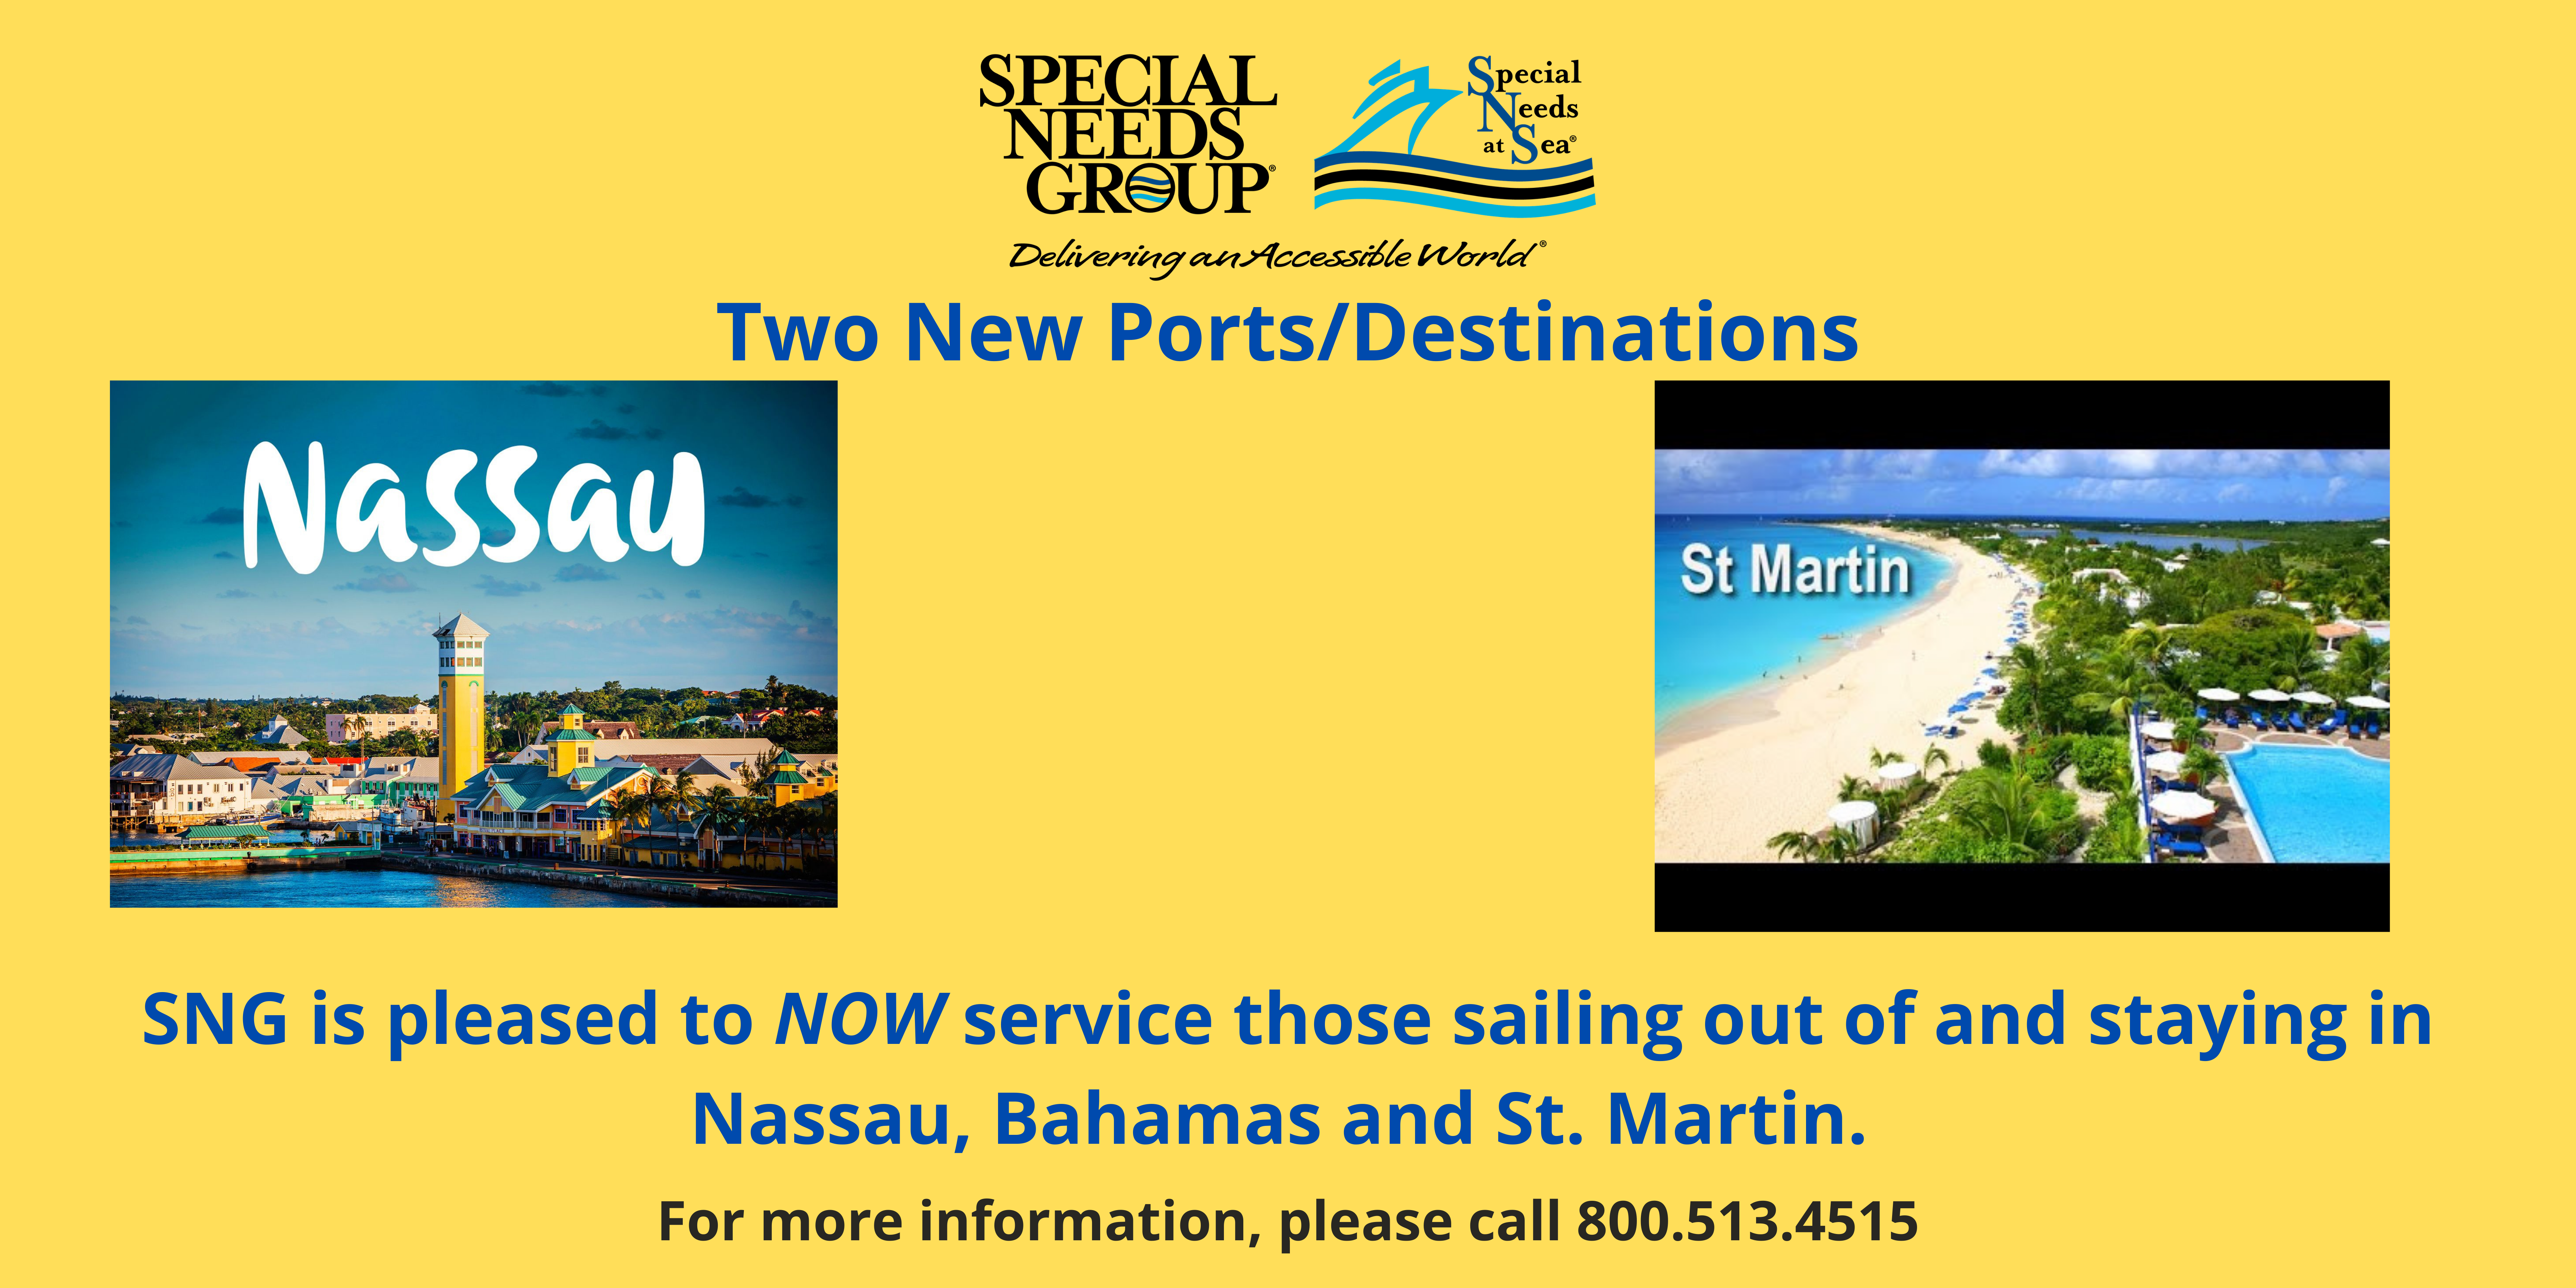 Special Needs Group Services Cruises Out Of St. Martin And Nassau, Bahamas